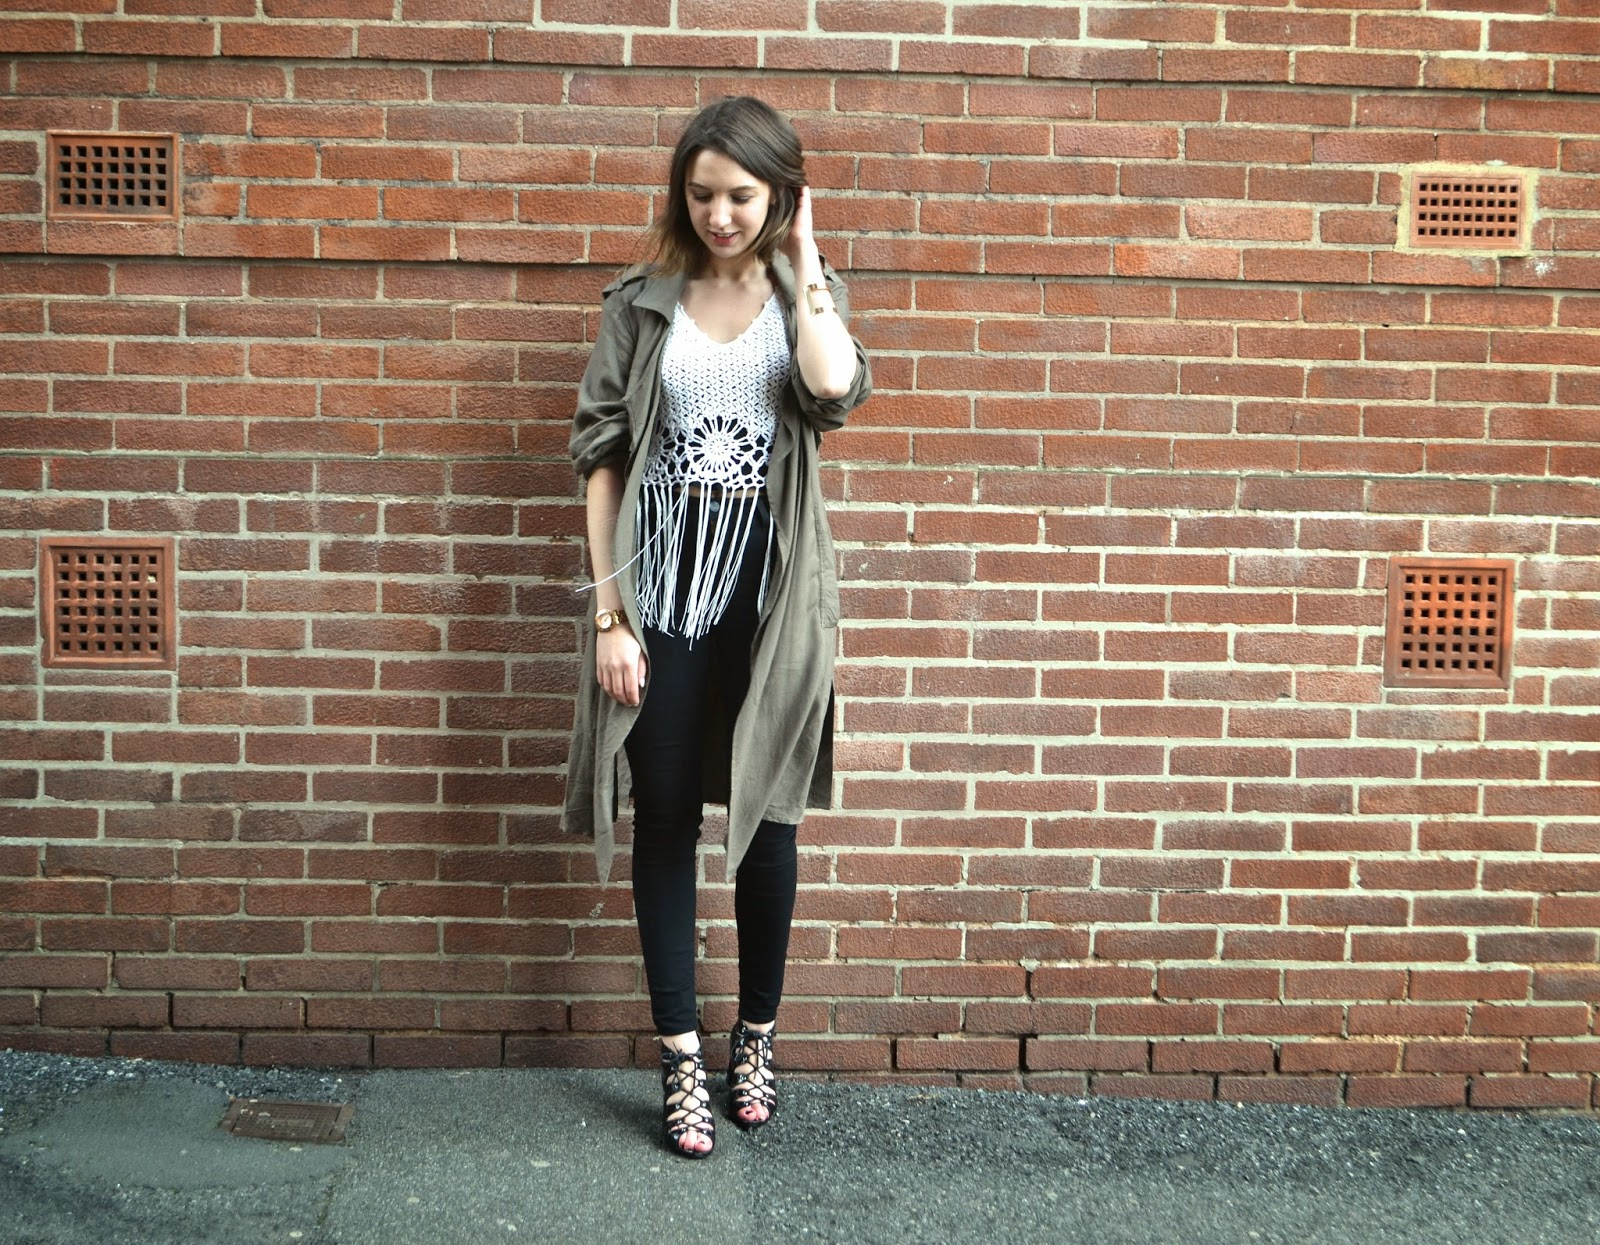 Khaki and Fringe Outfit Post - Fashion